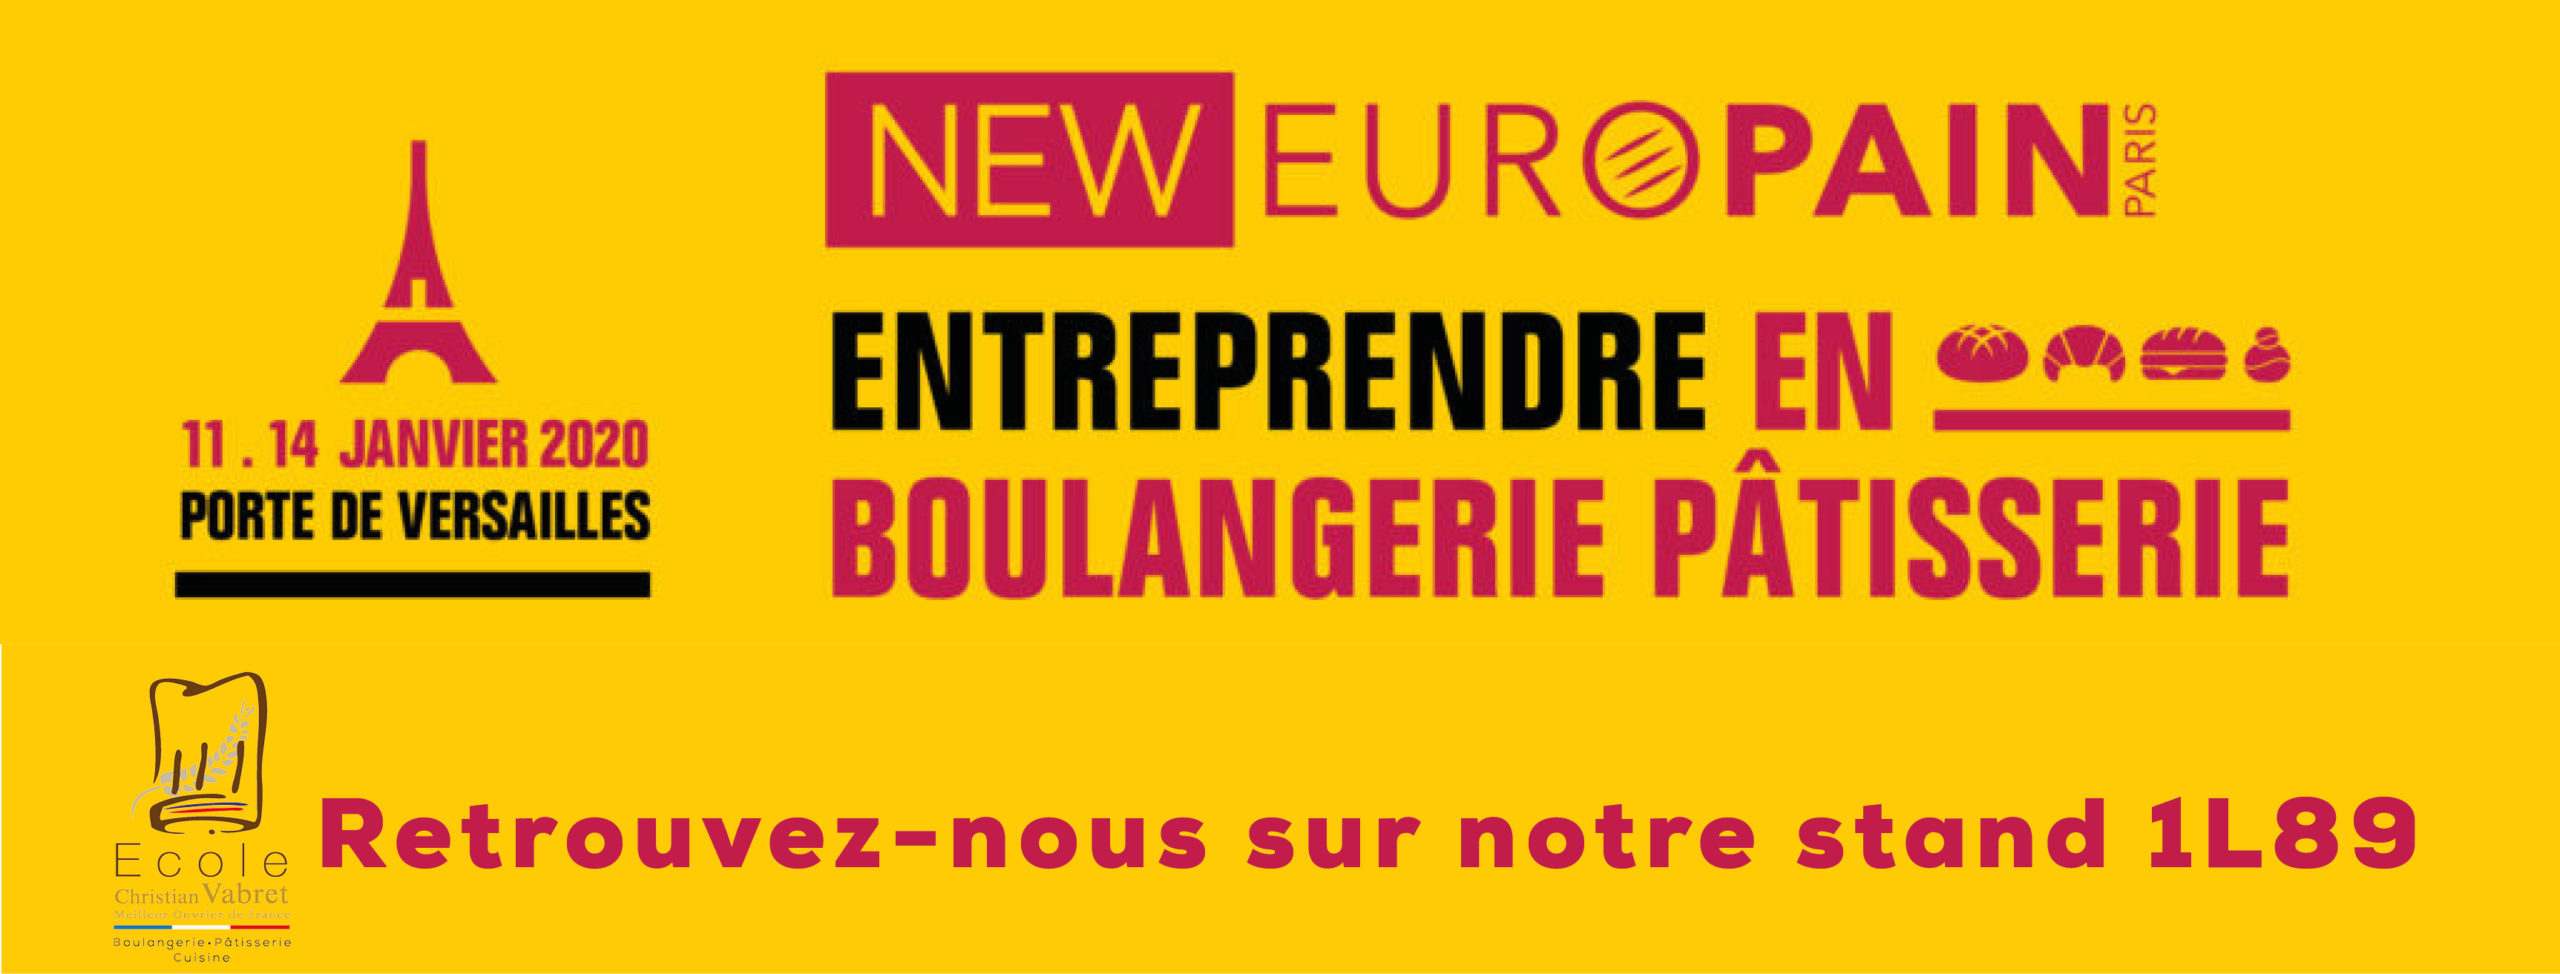 salon europain